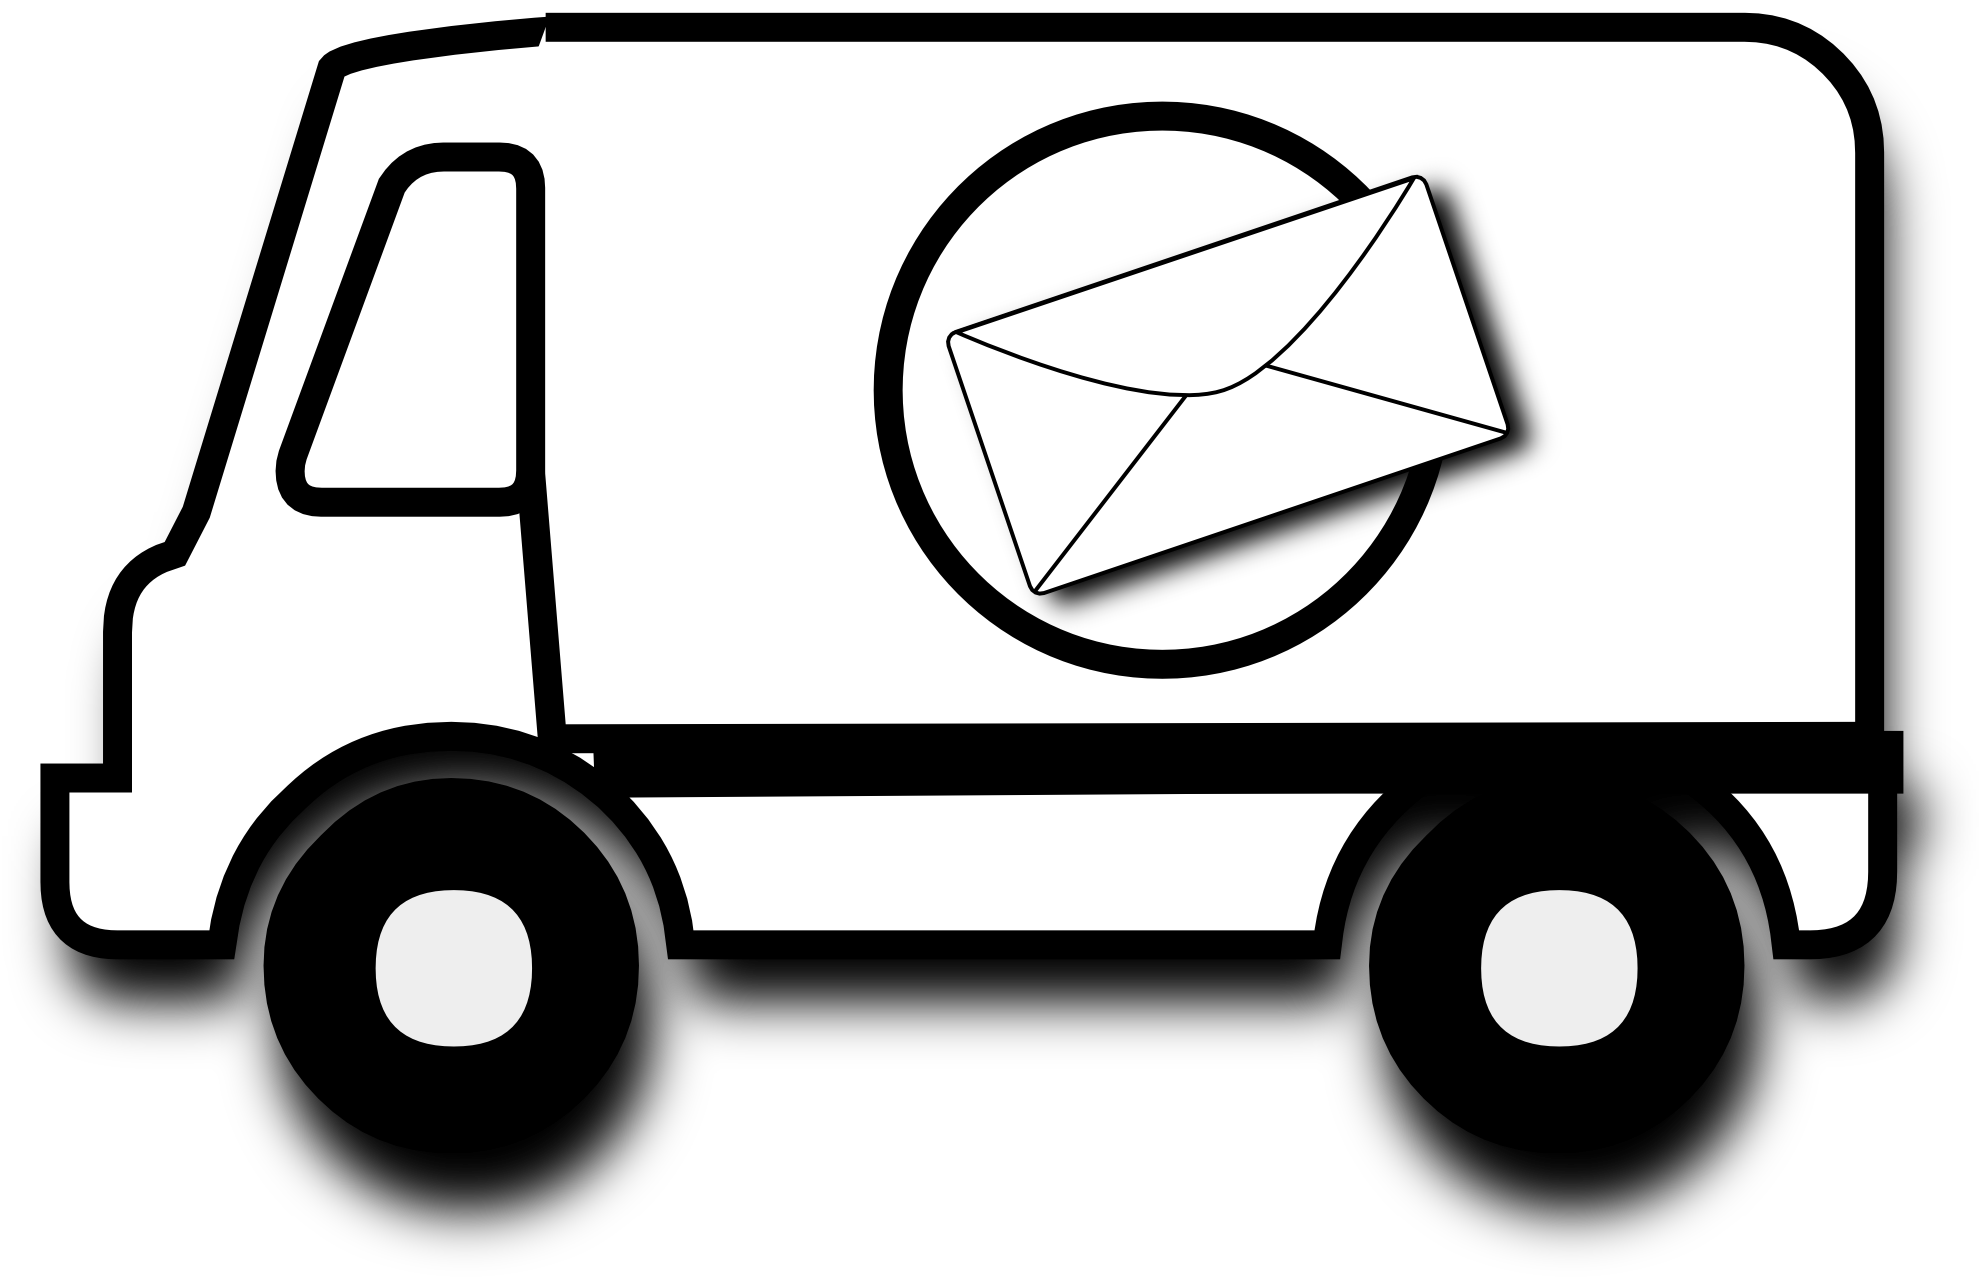 Post van clipart - Clipground